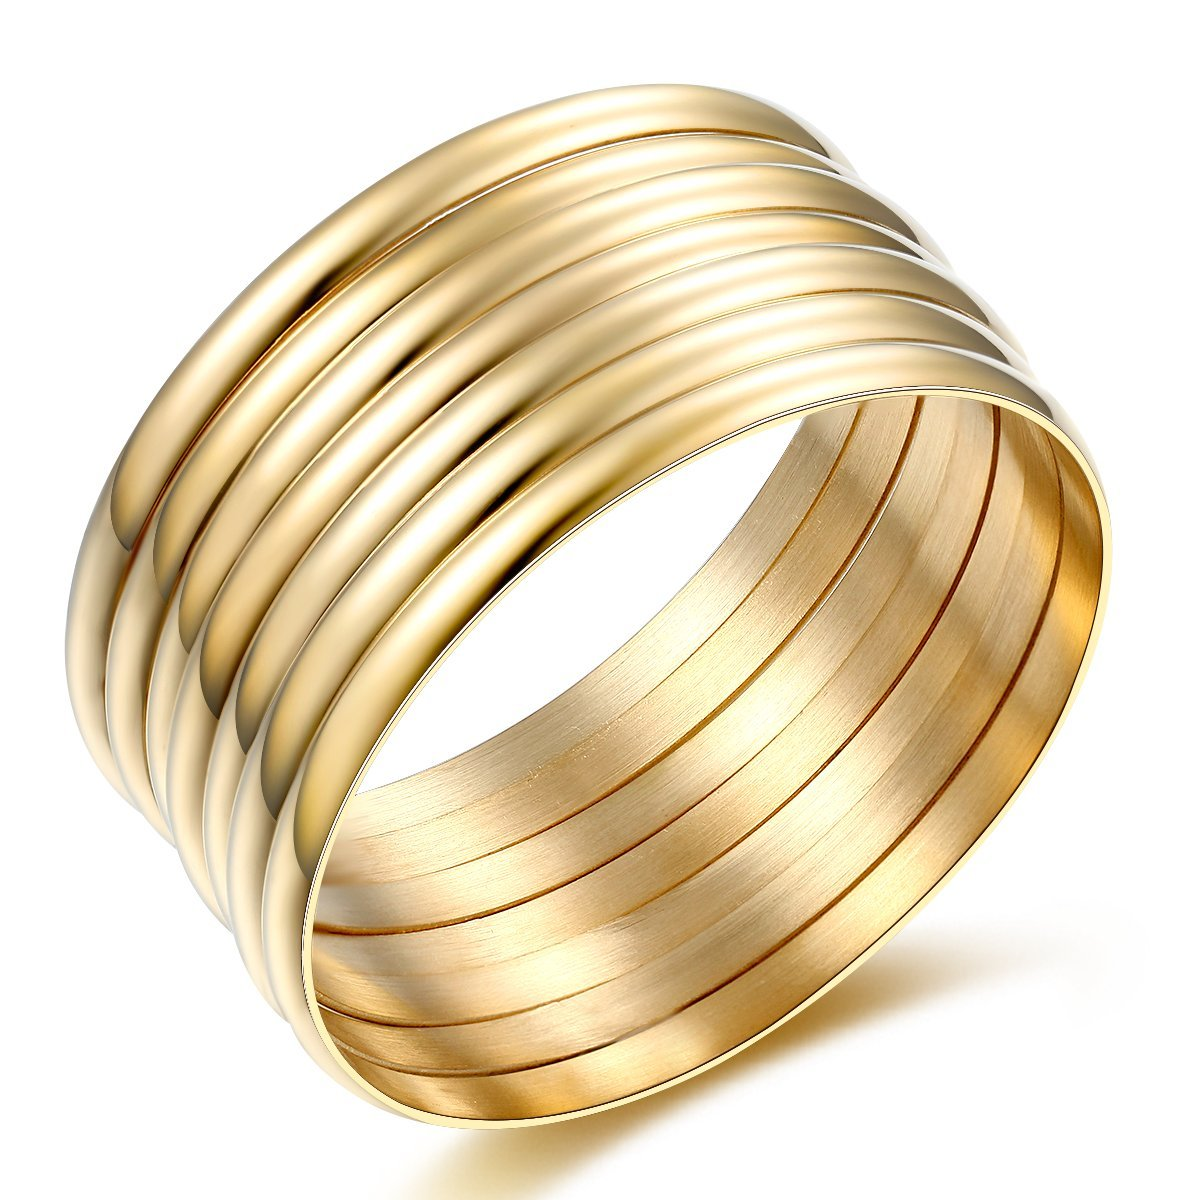 Carfeny 14k Gold Plated Bangles High Polish 7 Pieces Stackable Gold Bangle Bracelets for Women, Mother's Day Gift Birthday Gifts